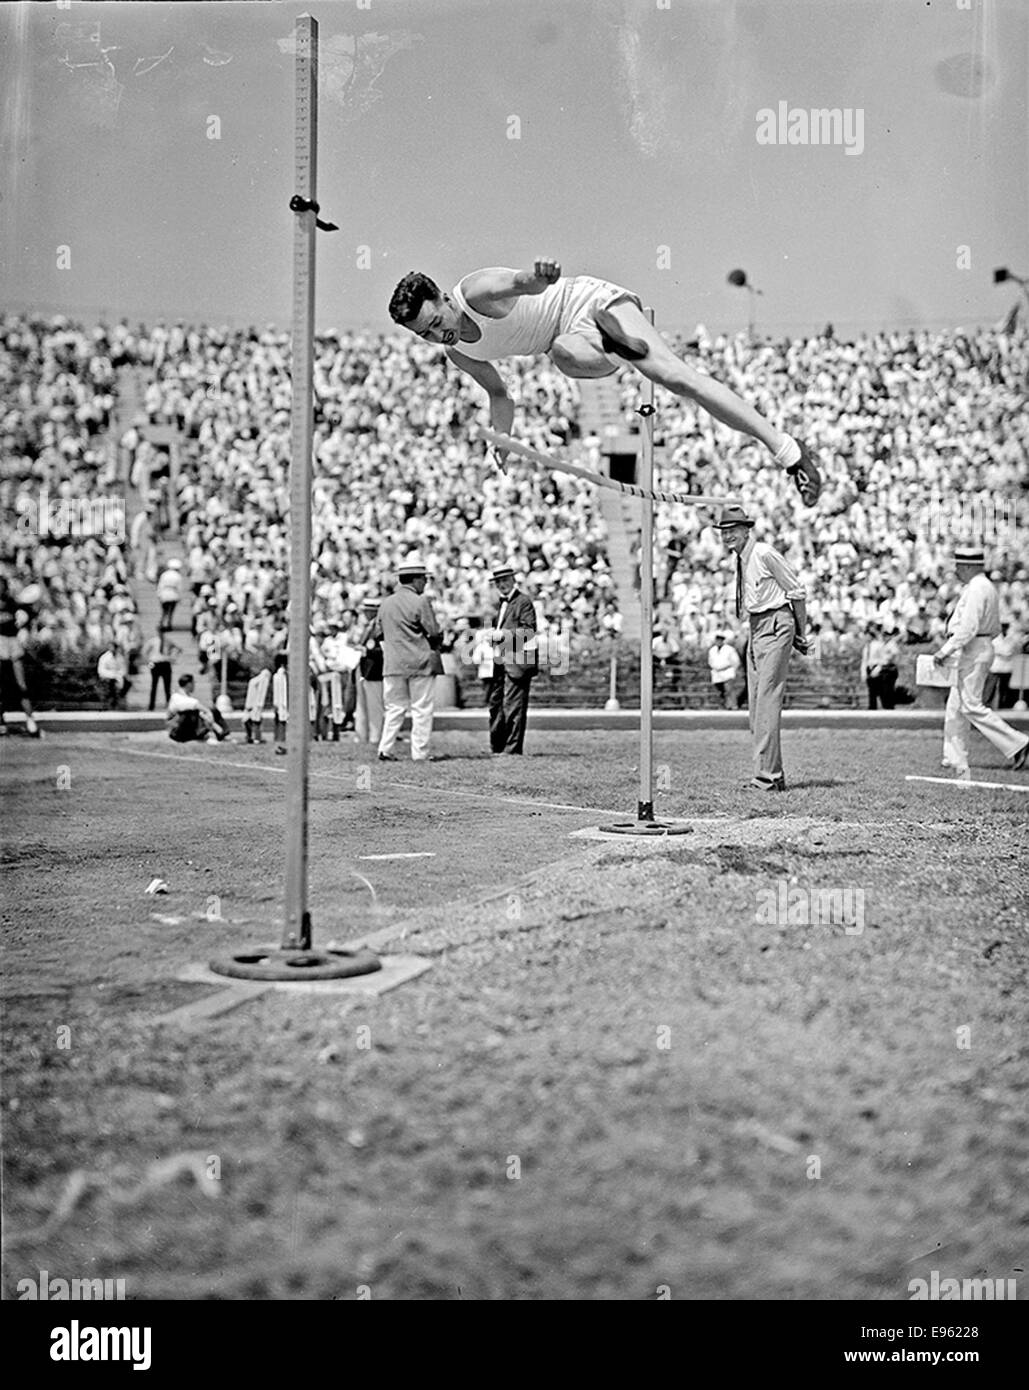 [Athlete knocking down the high jump bar at the 1936 Randall's Island Olympic trials, New York, NY] - Stock Image